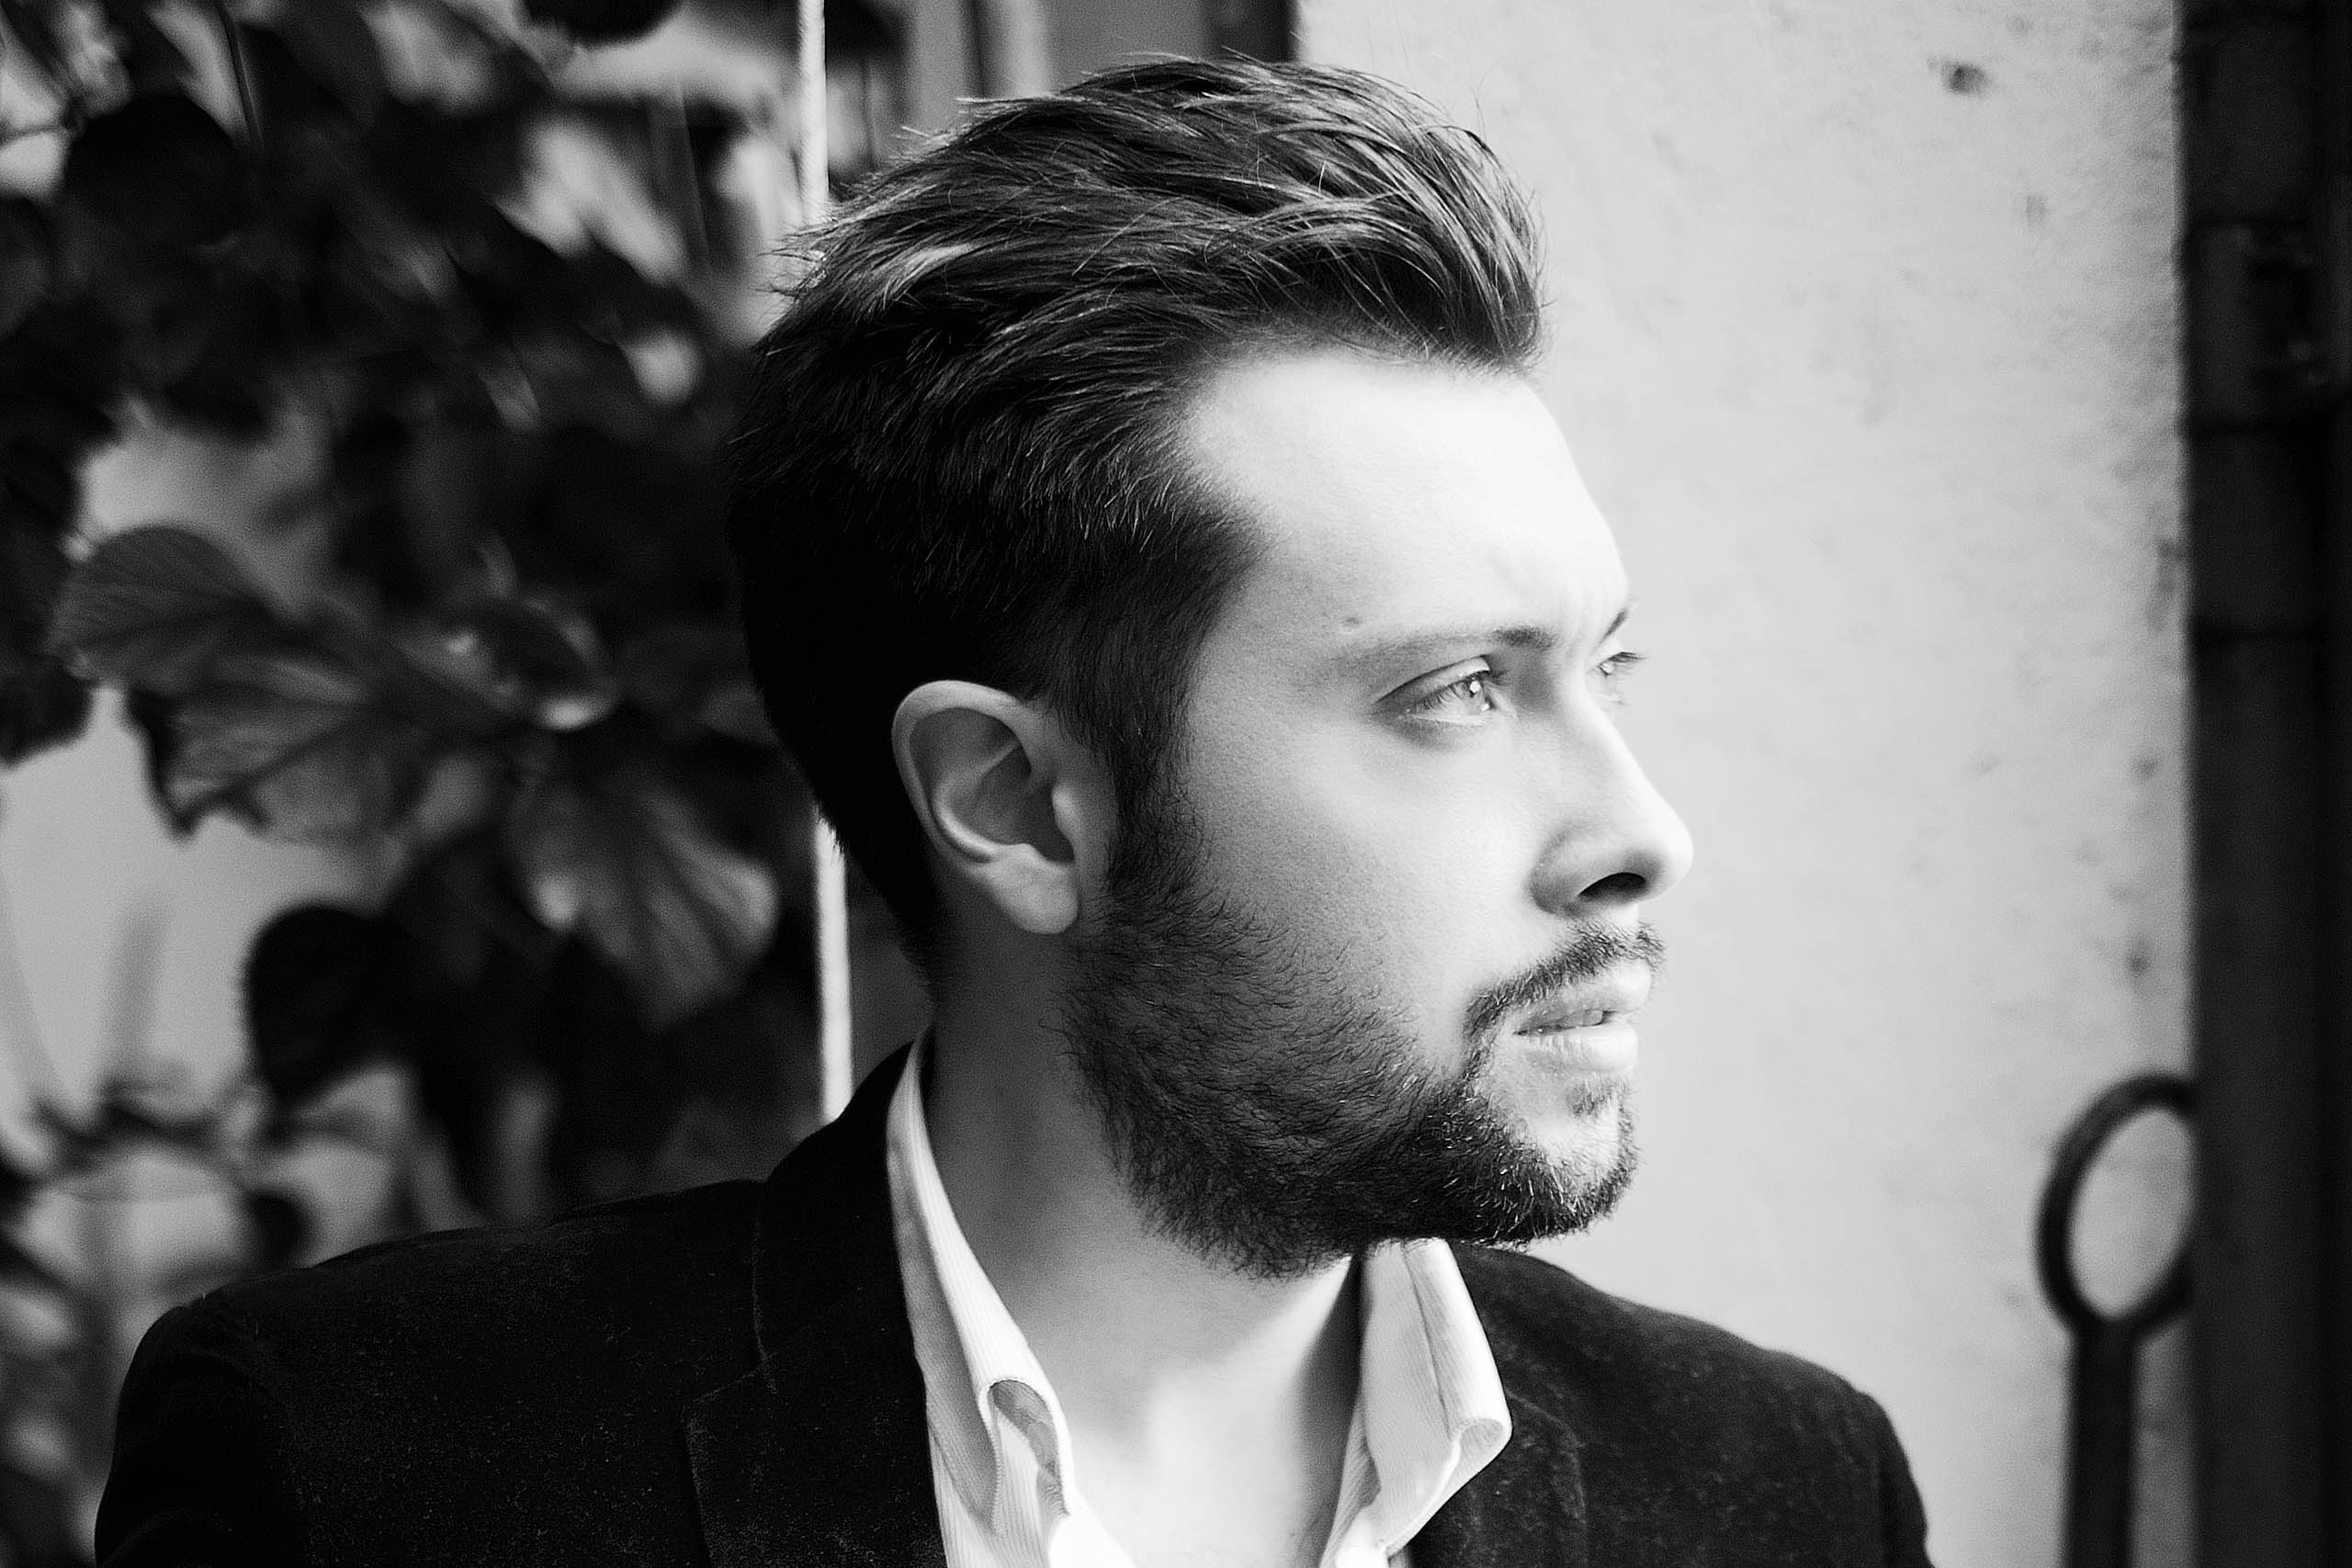 alessandro michelazzi profile photo